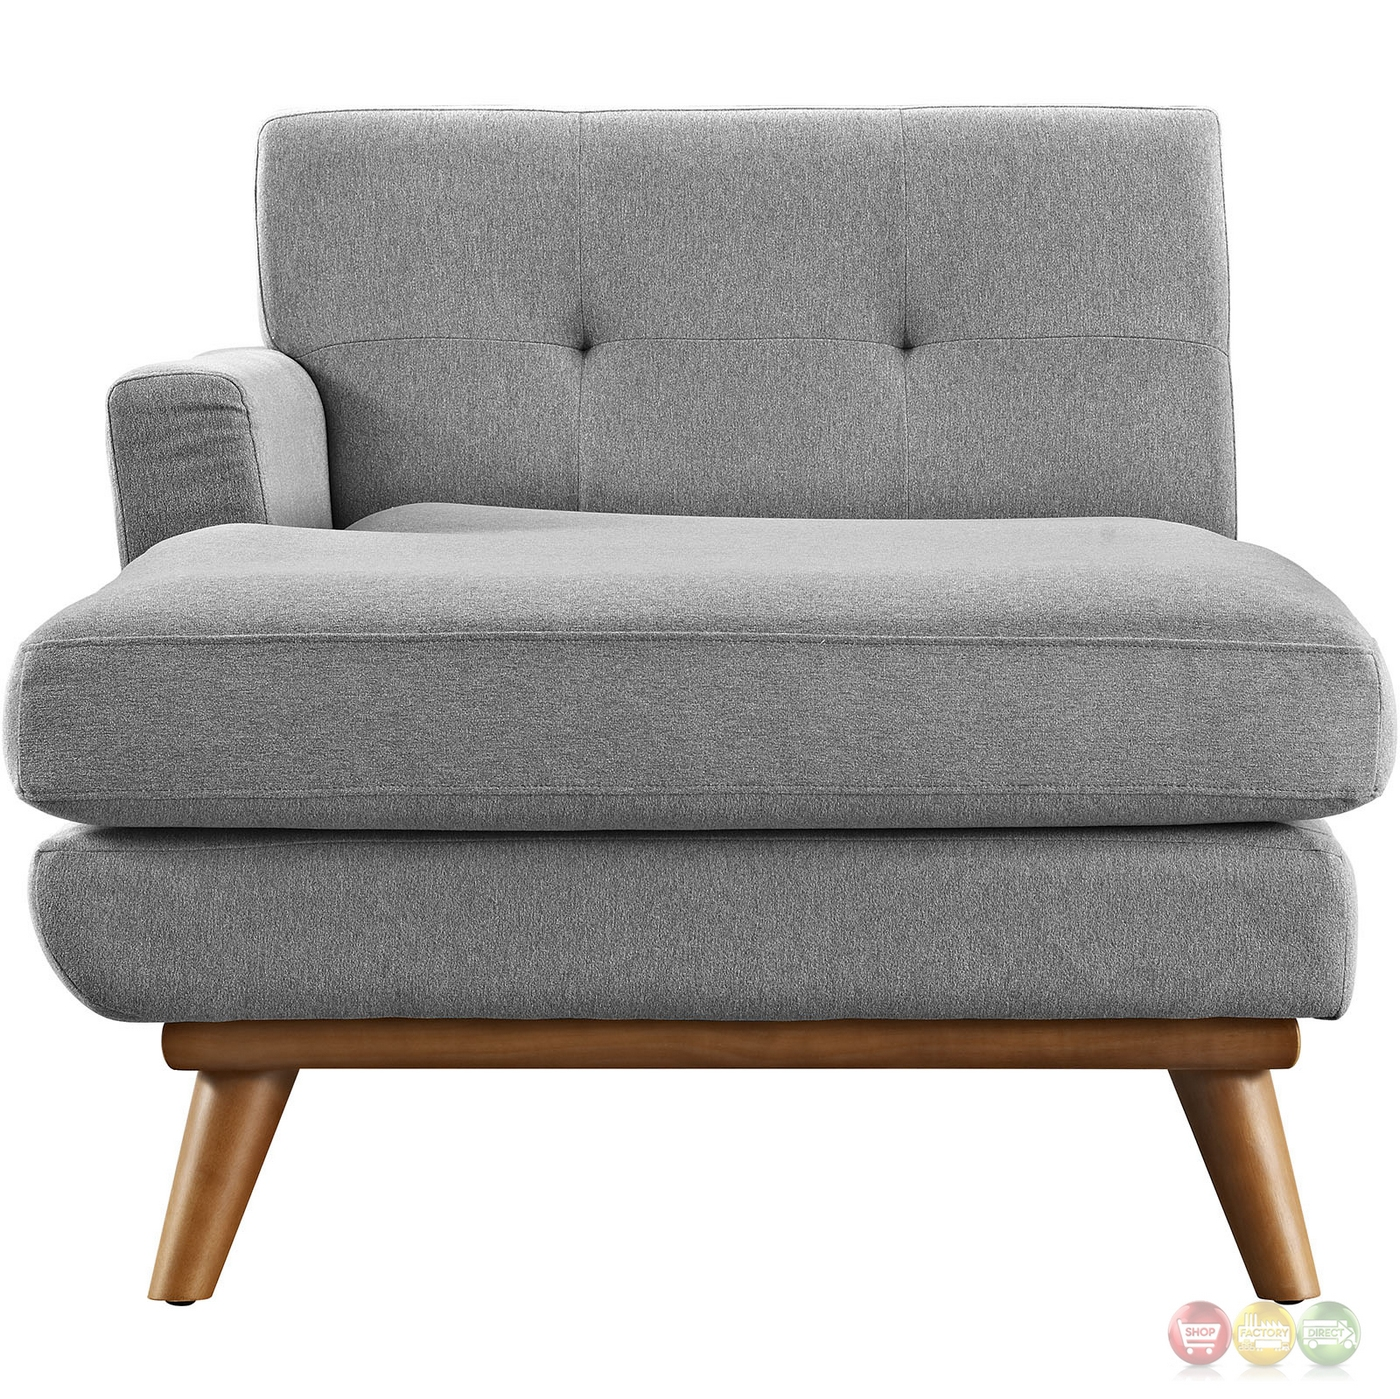 Engage modern button tufted upholstered left arm chaise for Button tufted chaise